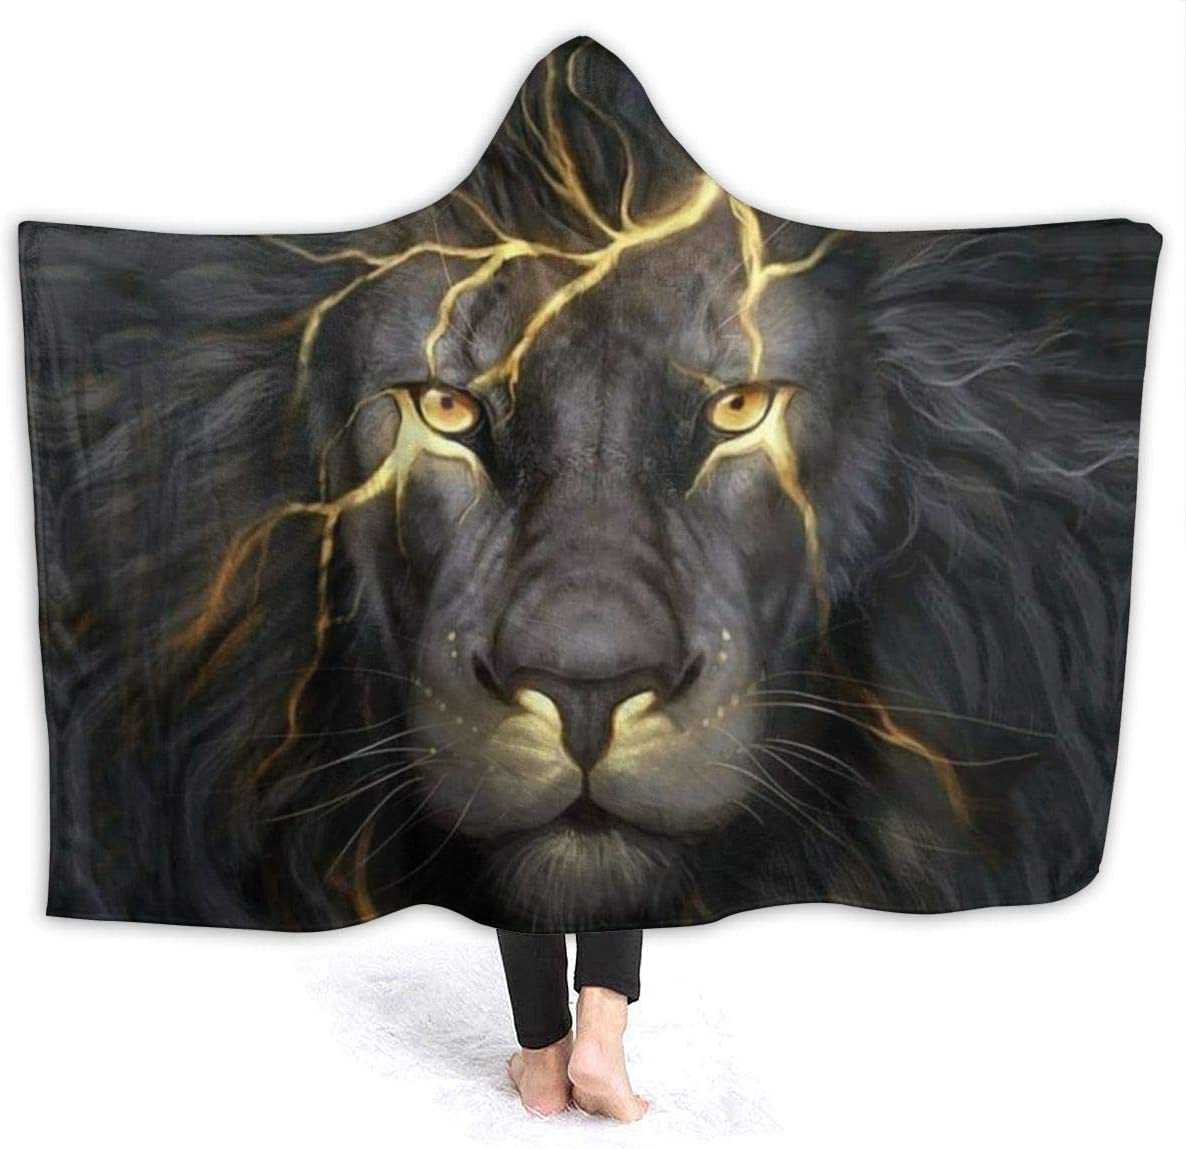 MSGUIDE Golden Cool Lion Paninting Dedication Blanket F Anti-Pilling supreme Hooded